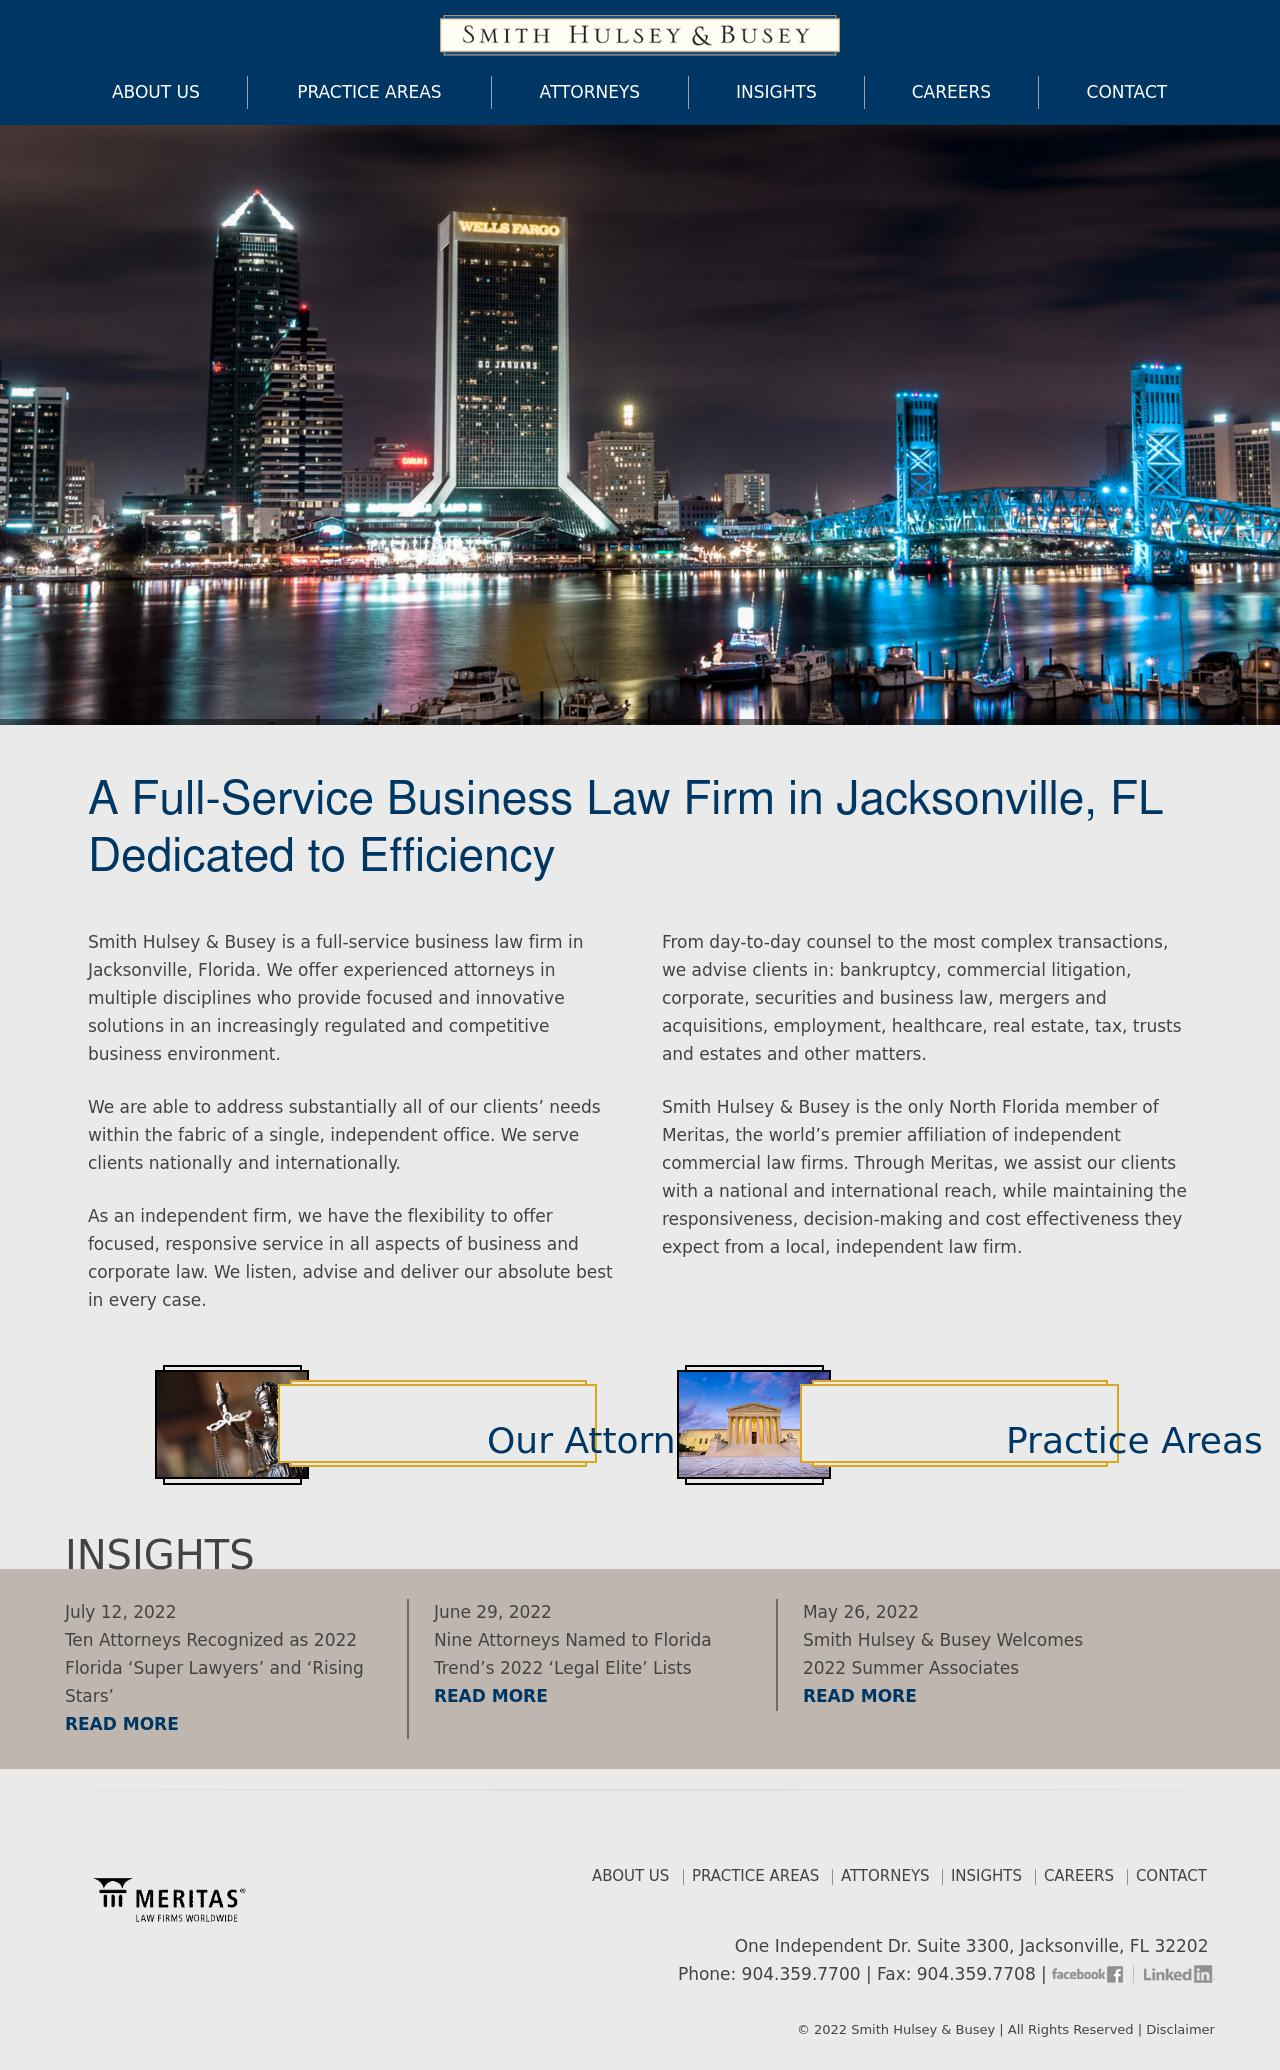 Smith Hulsey & Busey - Jacksonville FL Lawyers